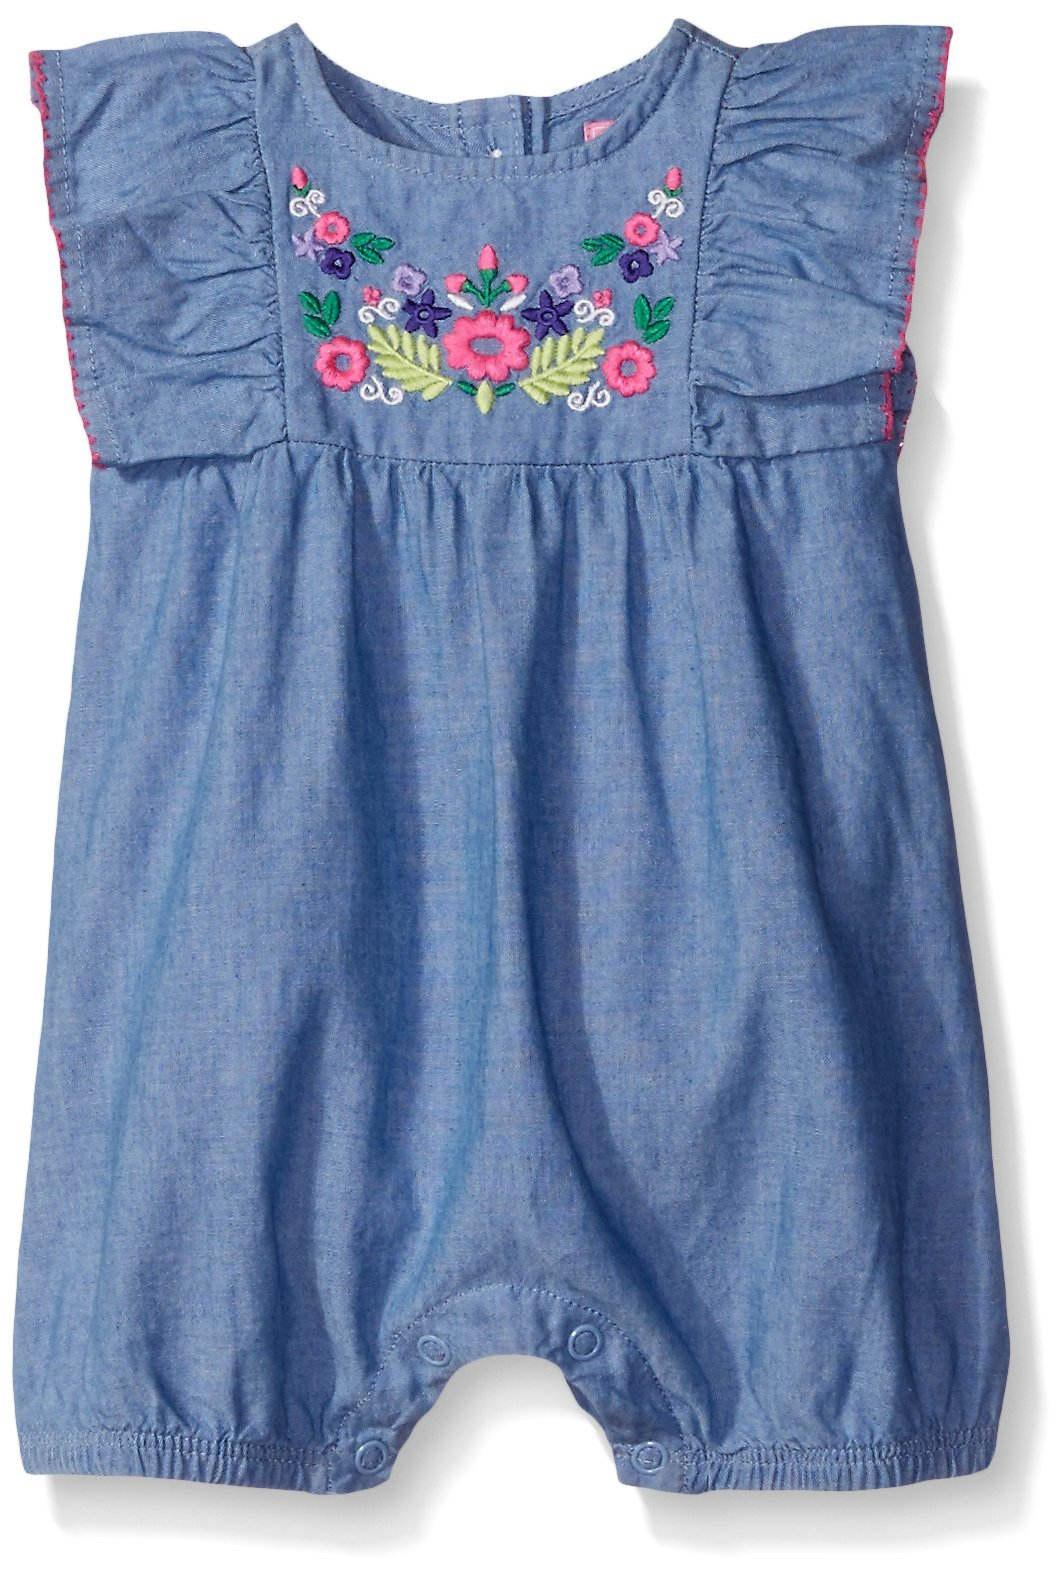 The Children's Place Baby Girls' Sleeveless Romper, Chambray 0887, 3-6 Months